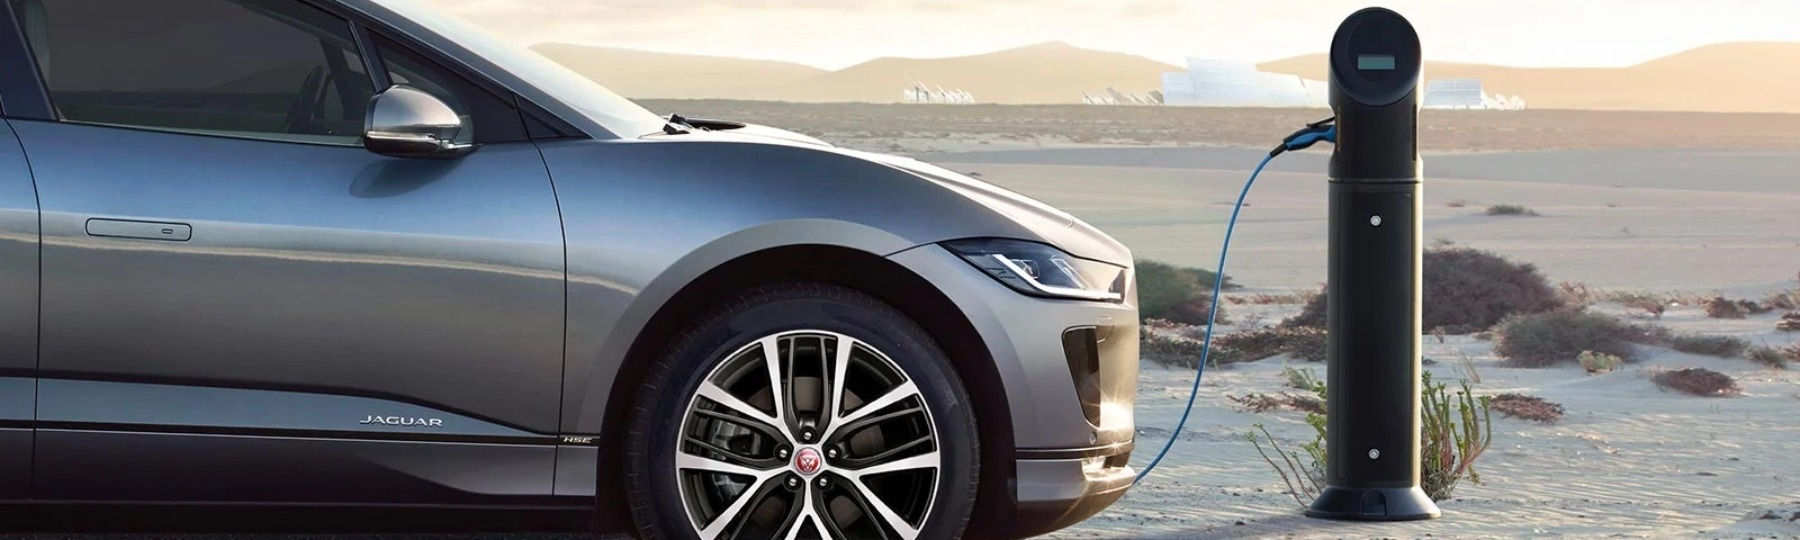 All Electric Jaguar I-PACE Event Offer